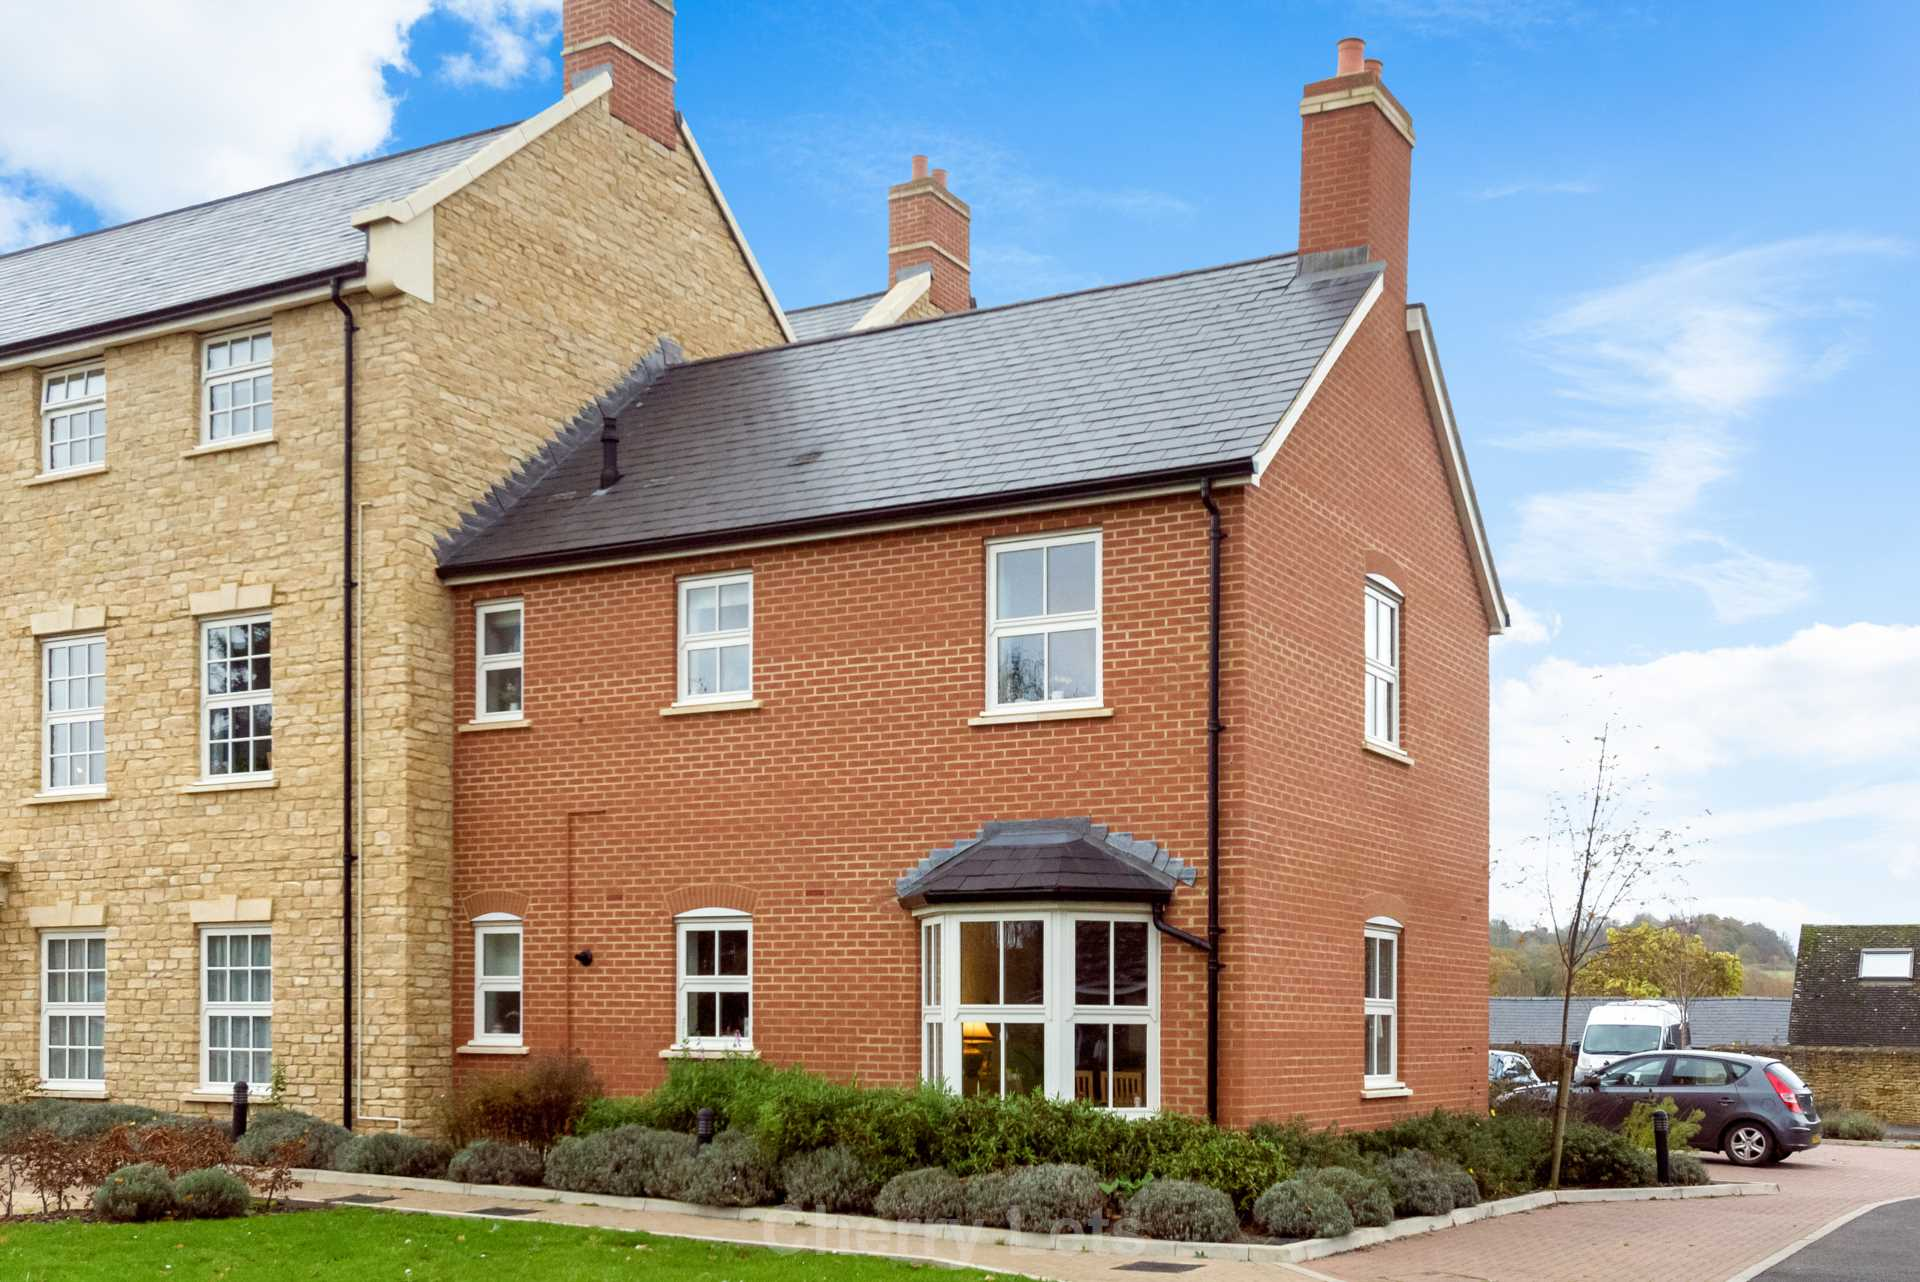 2 bed apartment to rent in Astrop Grange, Kings Sutton, OX17 14